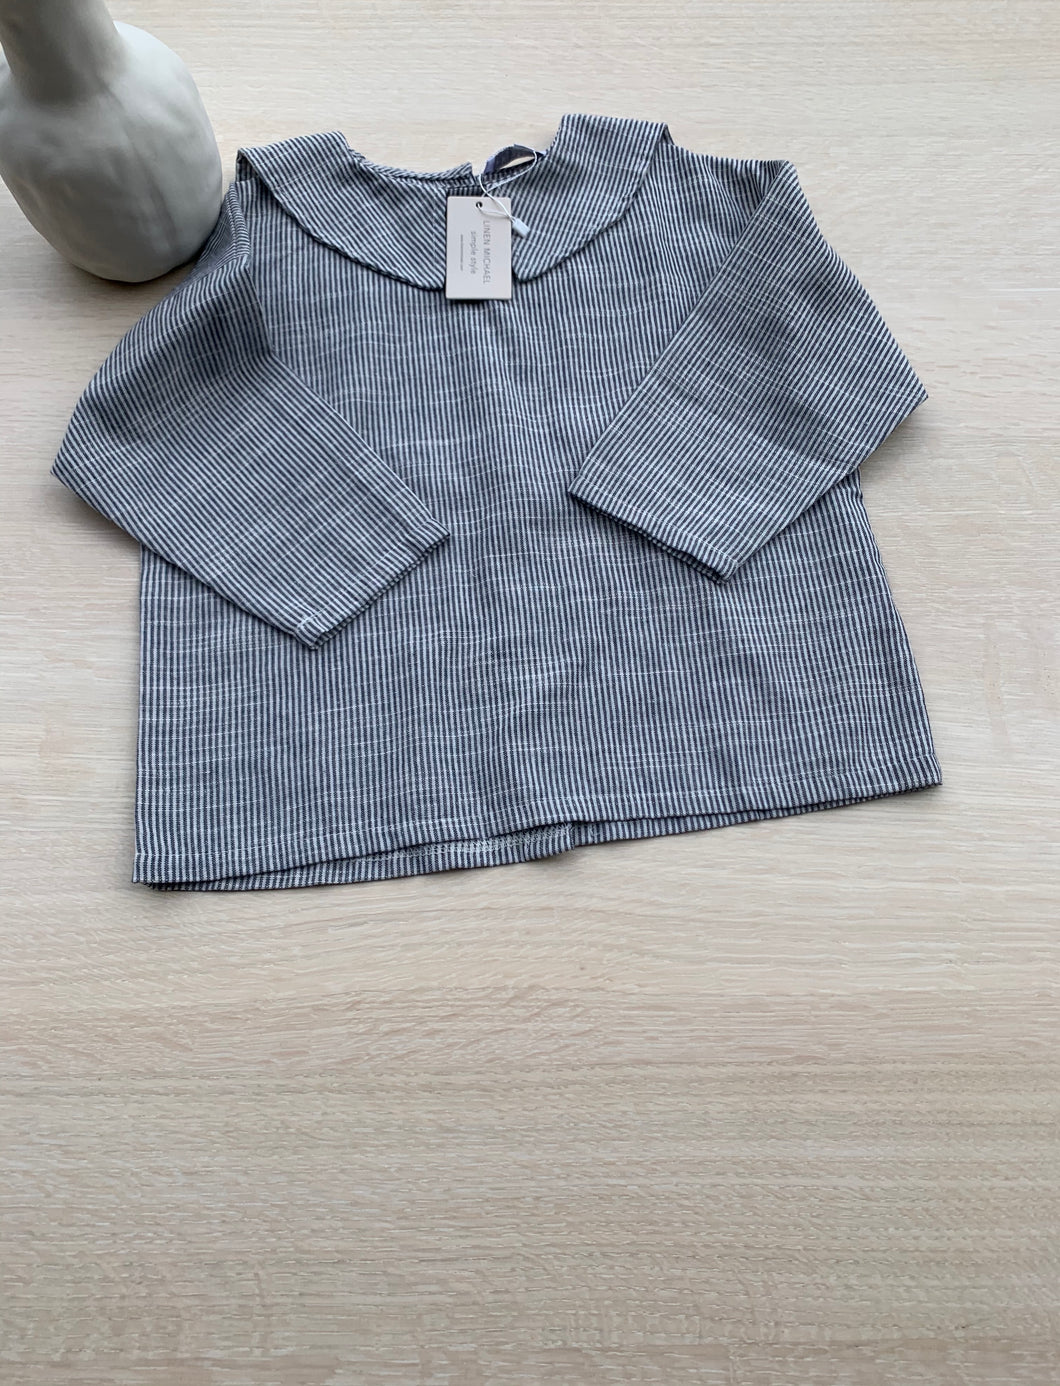 EMERSON TOP - Linen Michael